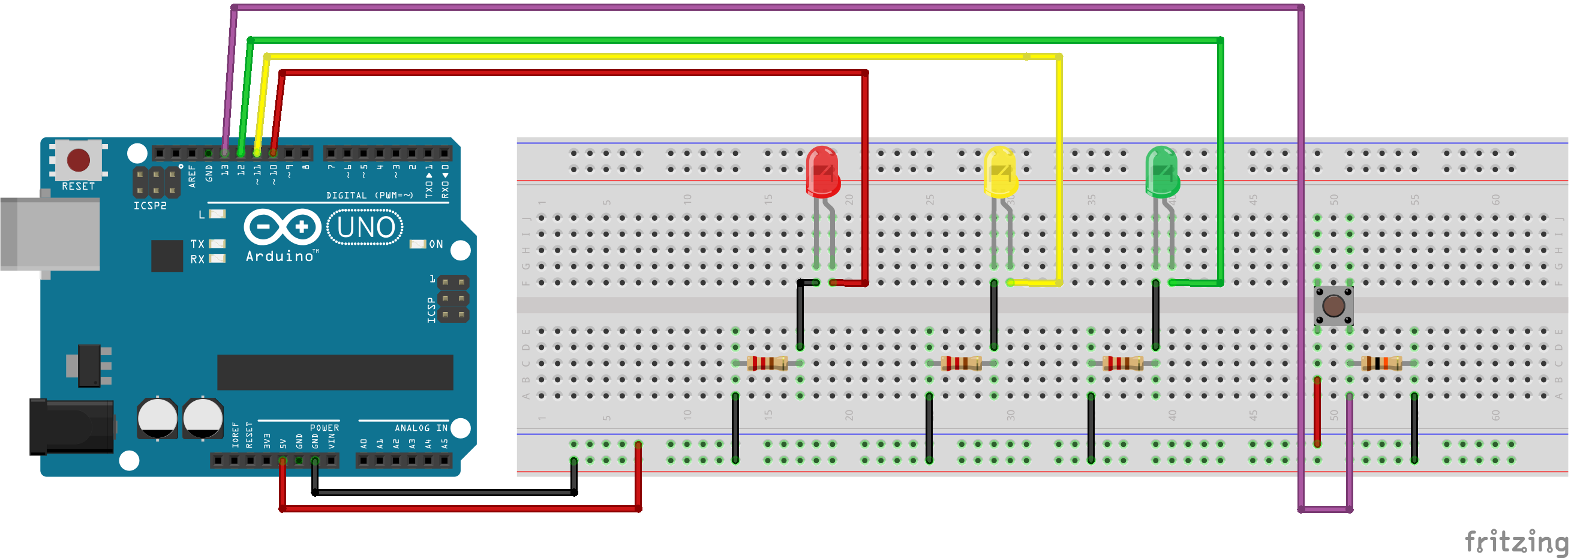 Not Logic Using Nand Gate further Mosfet Push Pull Gate Driver To High Base Voltage likewise ArduinoPassaggioPedonale also Ac Single Phase Motor Control With A Triac Failure To Trigger in addition H Bridge Blowing My Transistors. on breadboard circuits